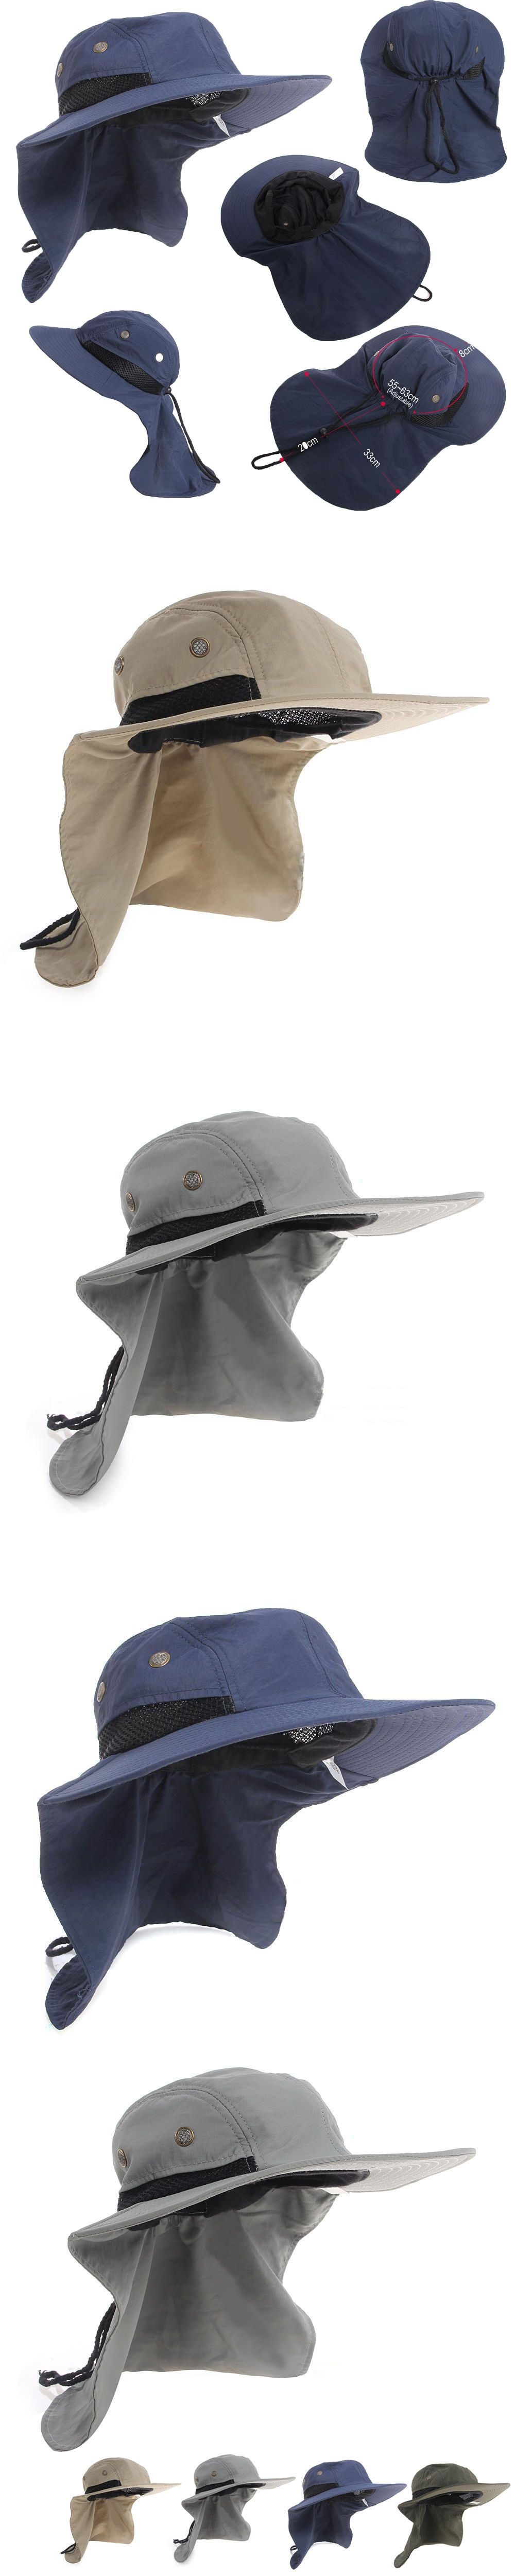 5d72f21a80c Hot Summer New Function Neck Flap Boonie Hat Fishing Hiking Safari Outdoor  Sun Brim Bucket Bush